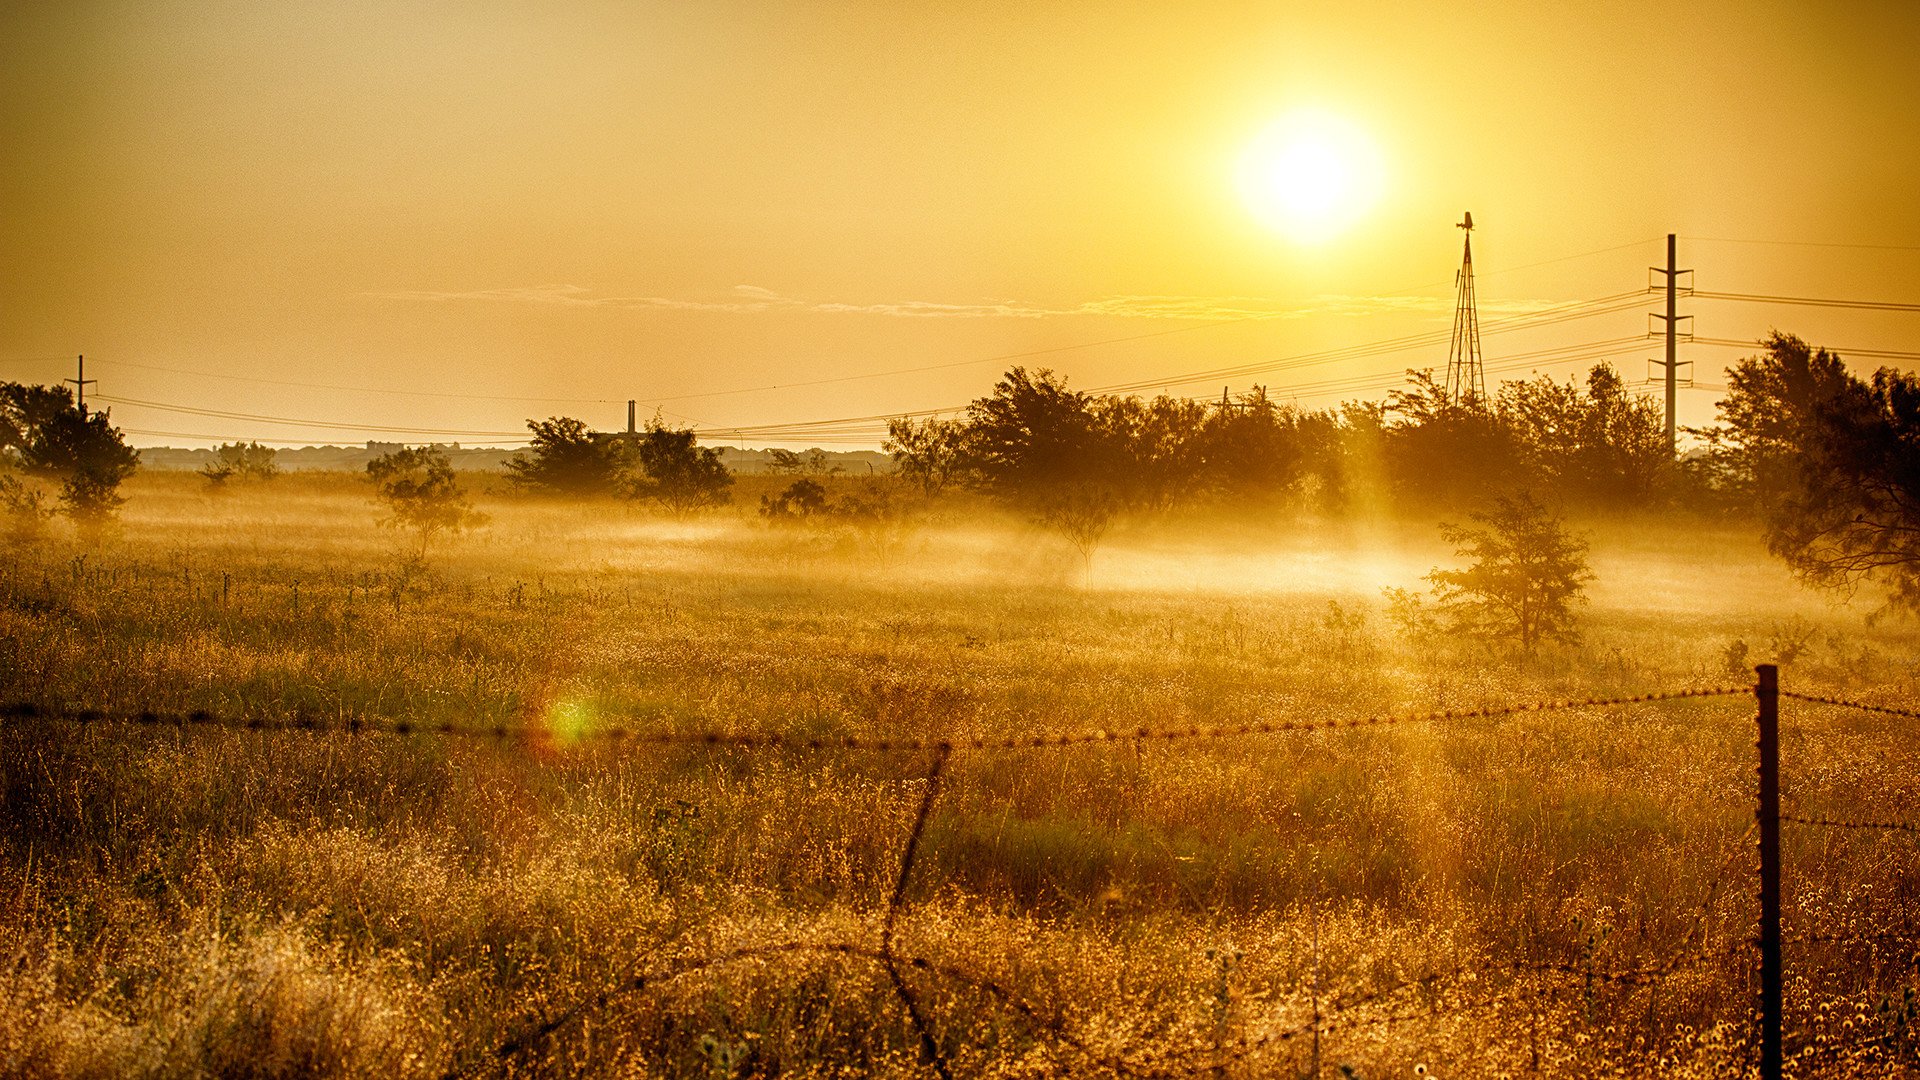 country setting wallpaper | Country Sunrise HD Wallpaper – HD Wallpapers